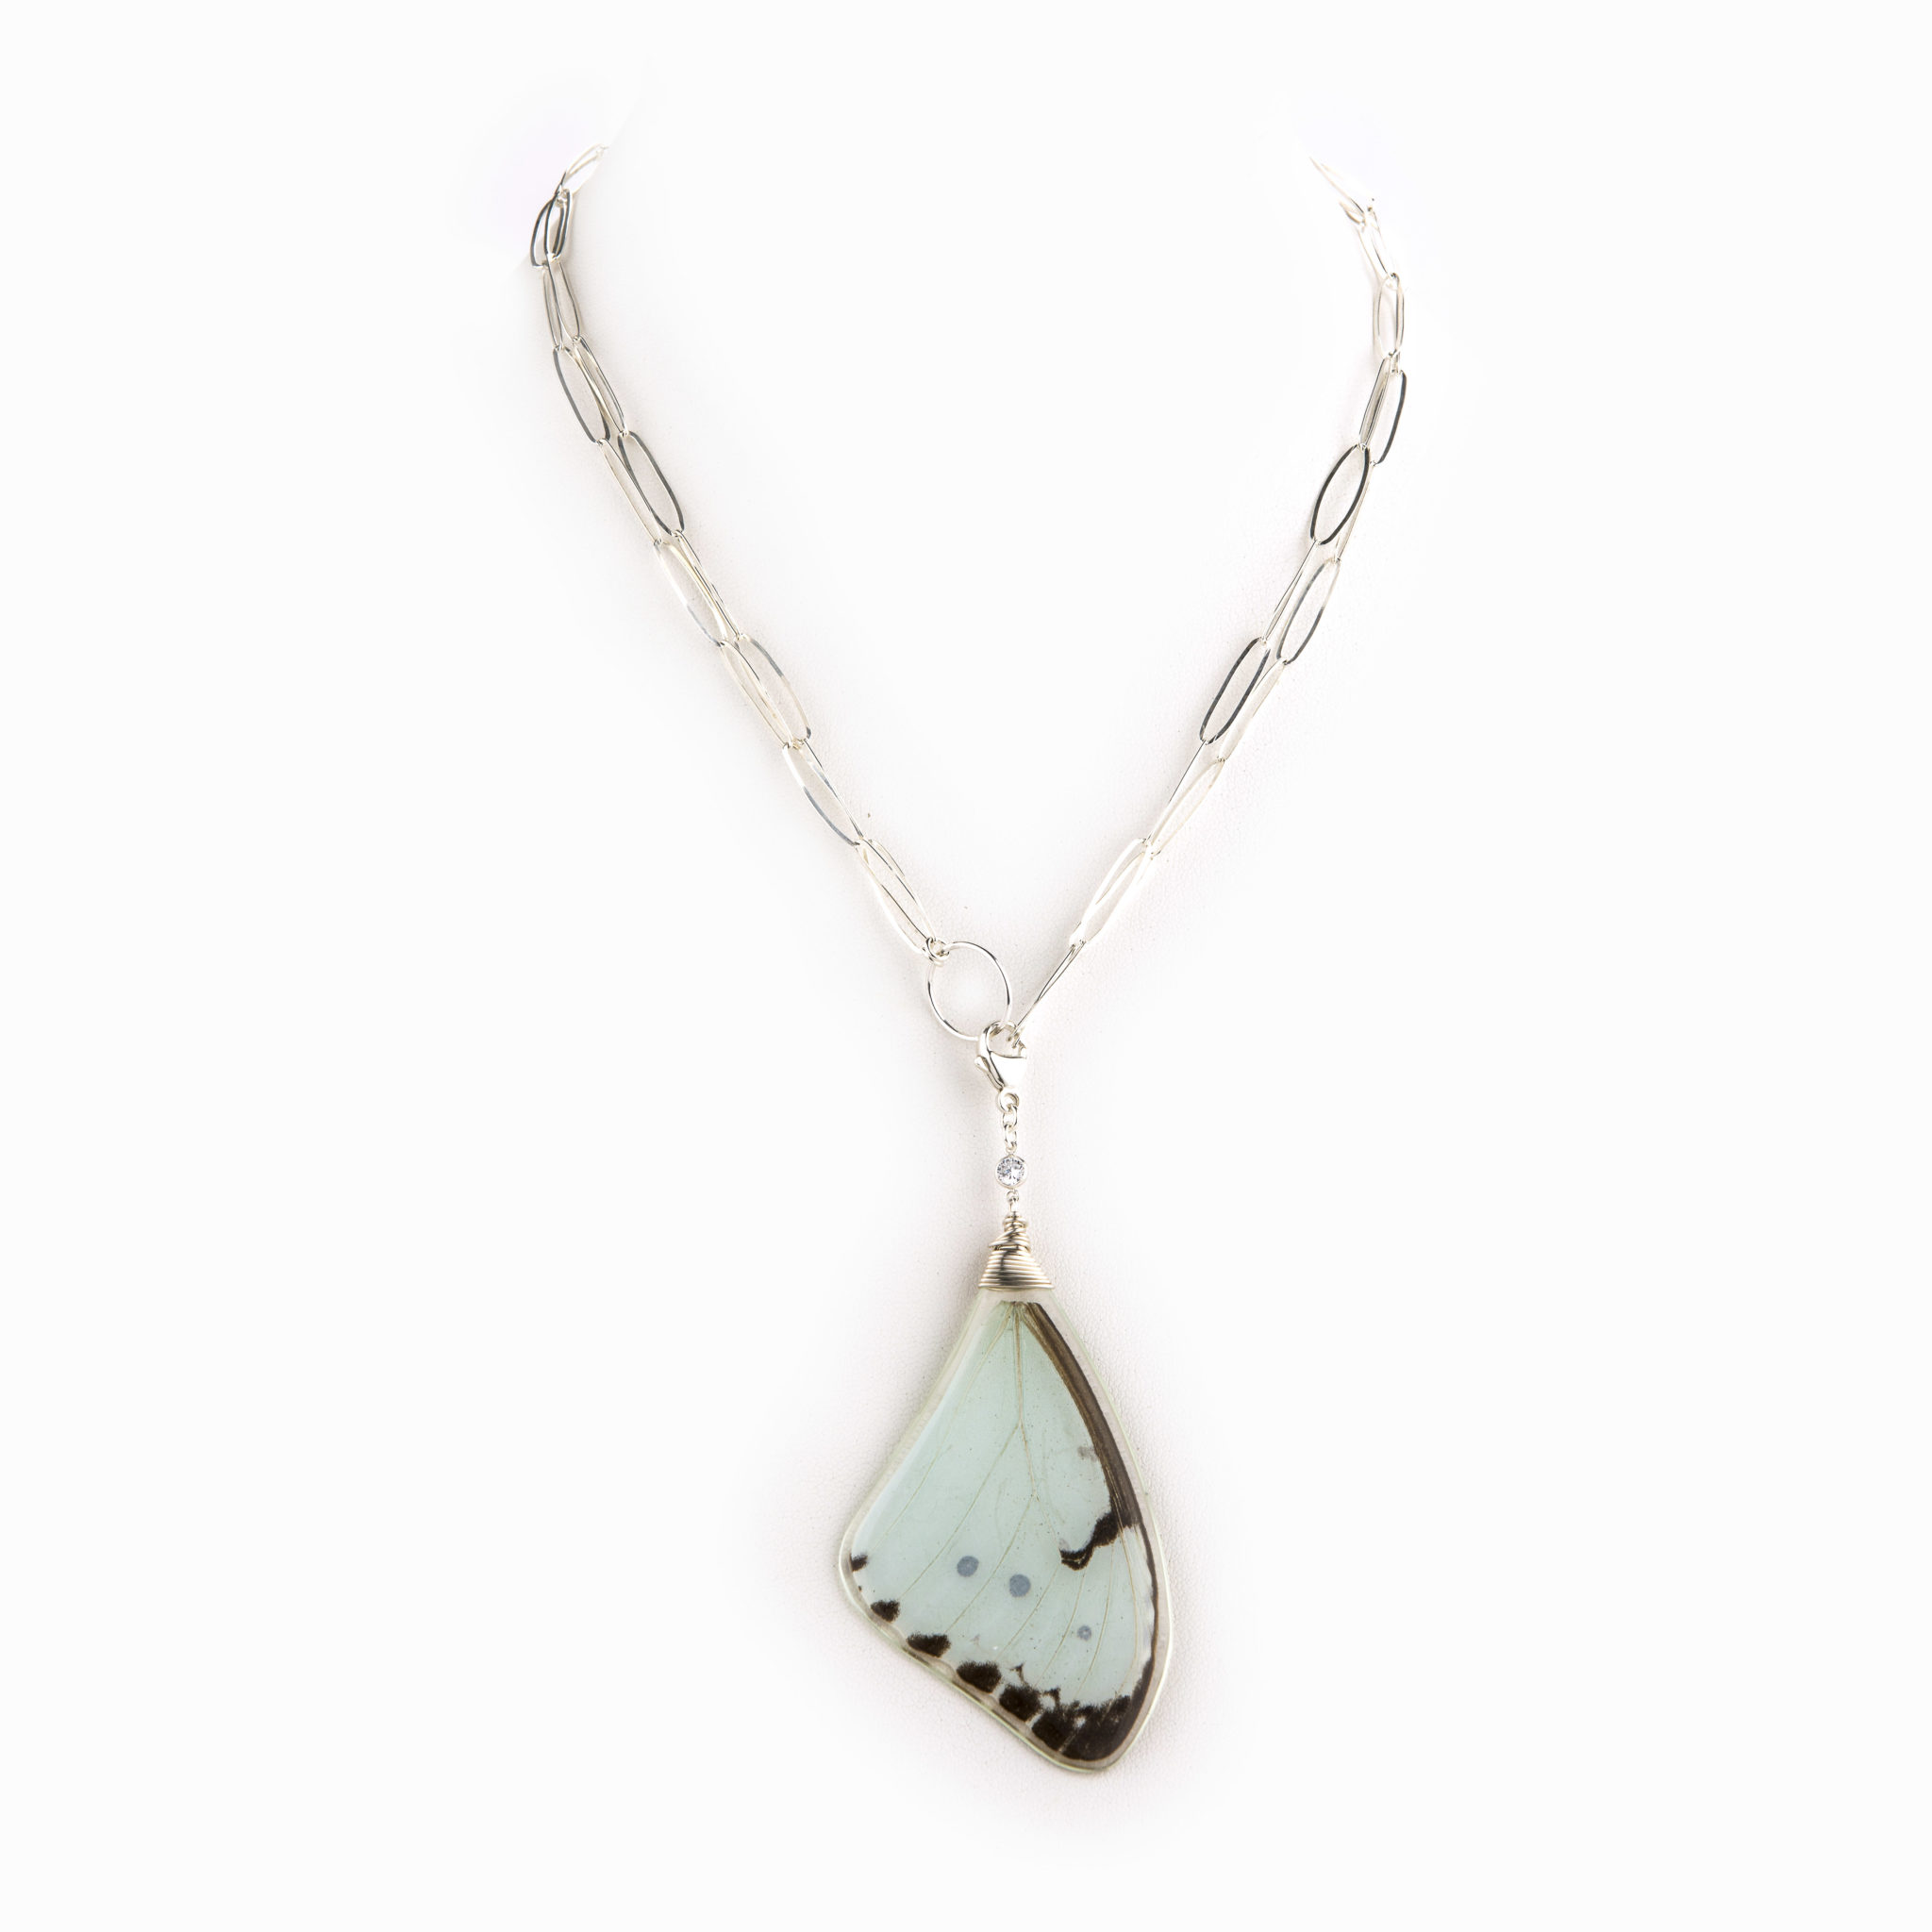 A delicate and thin sterling silver paper clip chain with light blue butterfly wing charm.